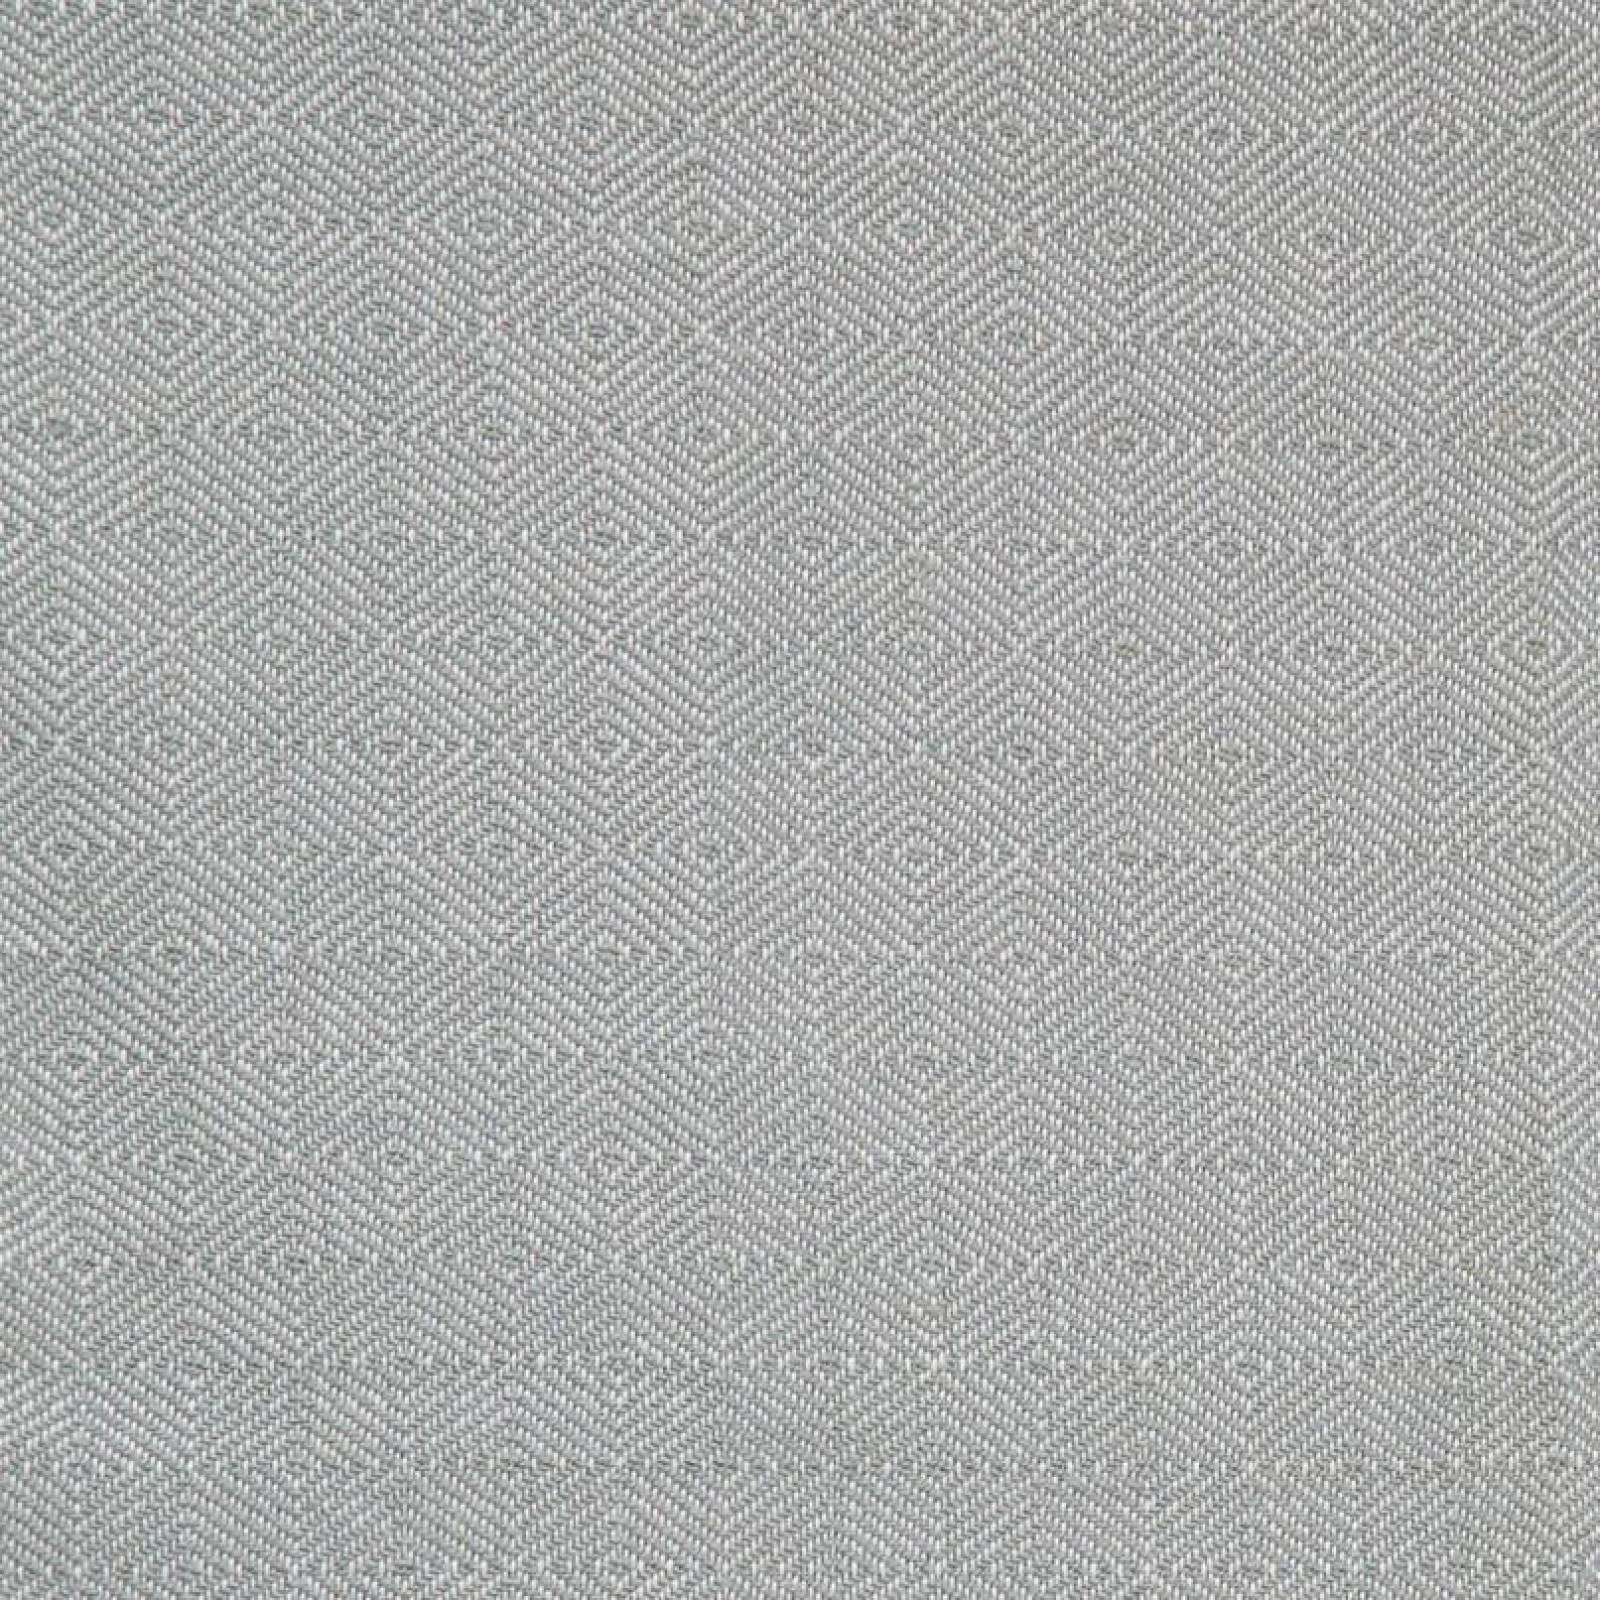 Grey Blanket From Recycled Bottles thumbnails